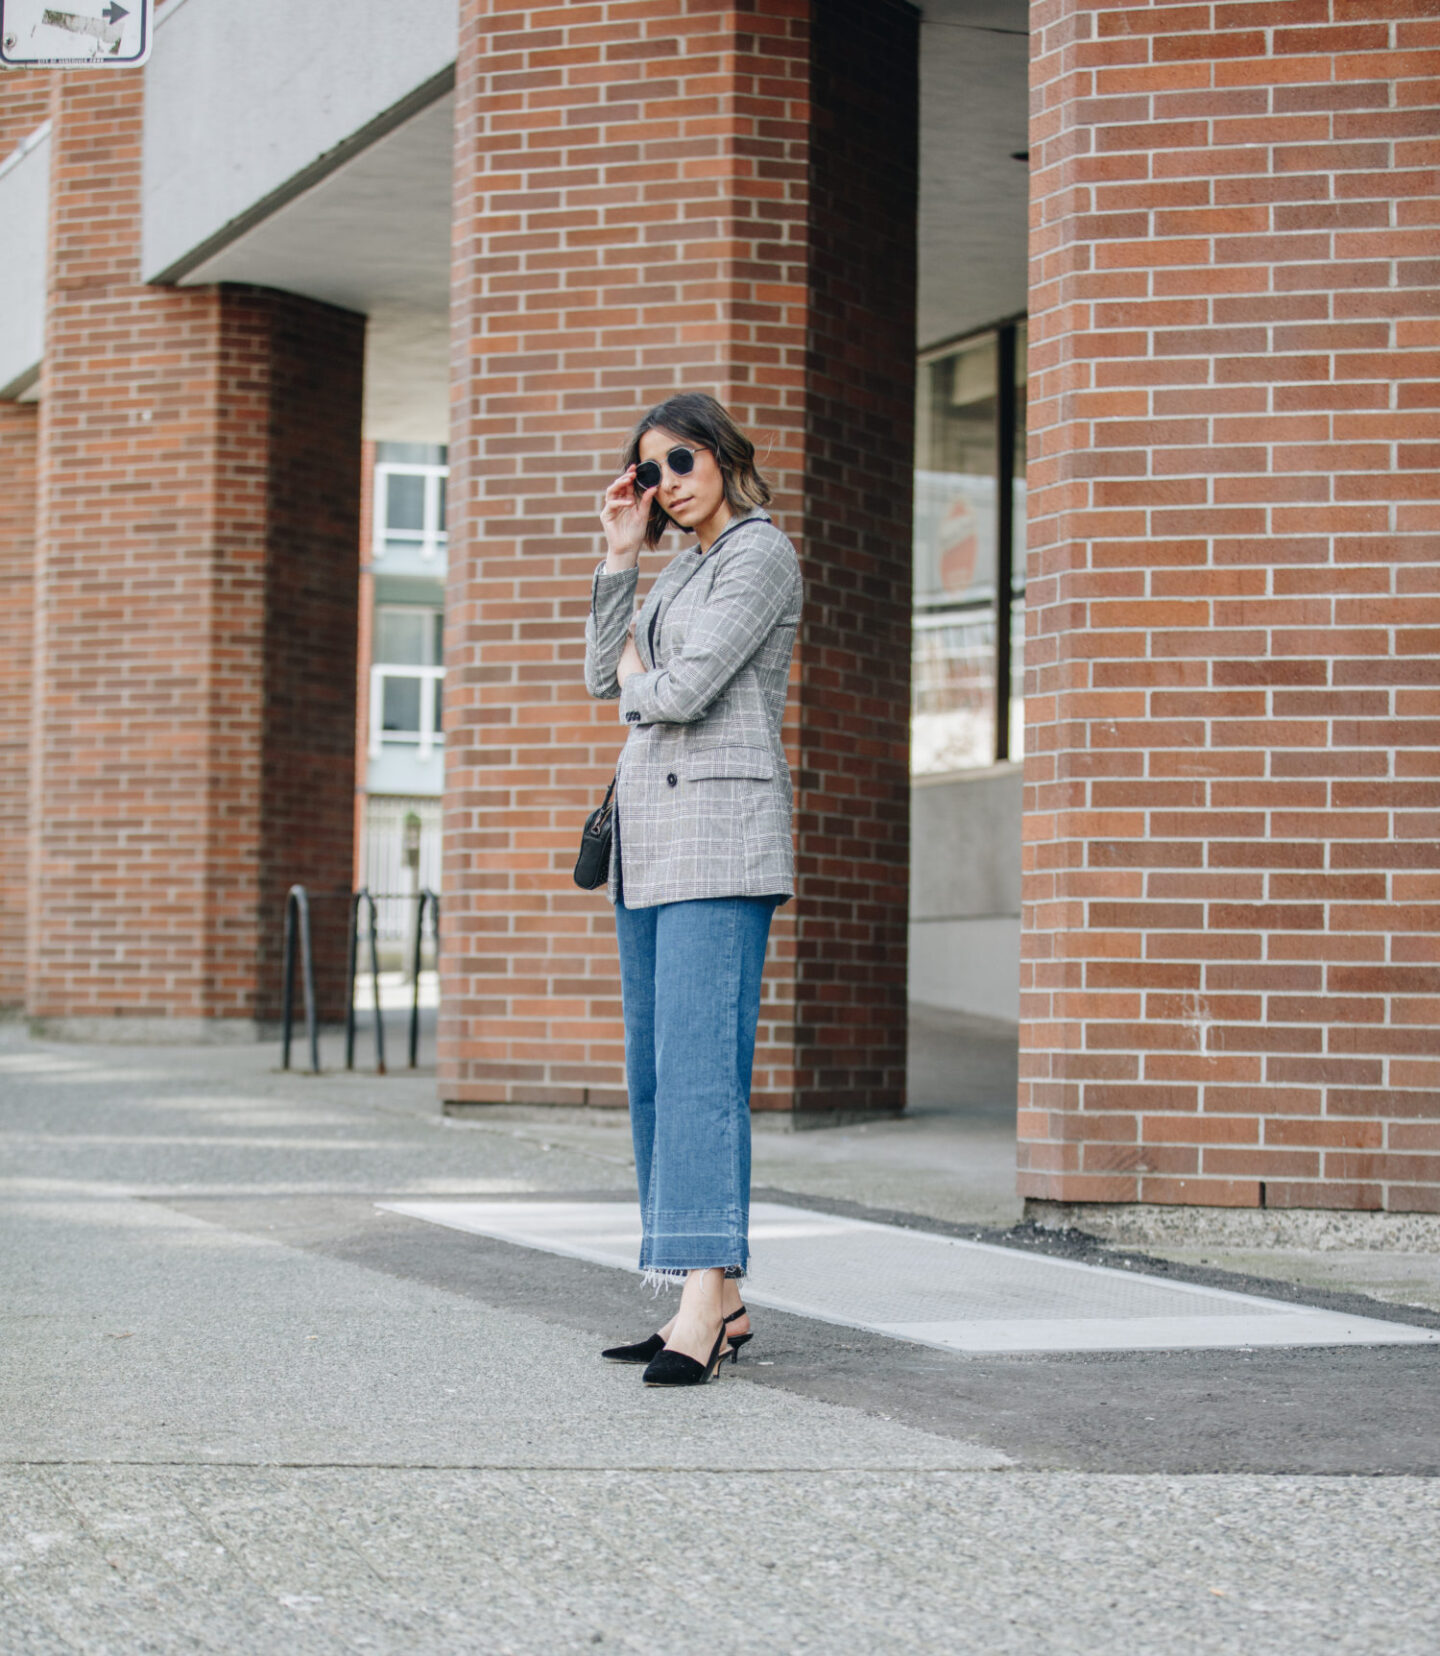 Lighter layers for spring using blazers